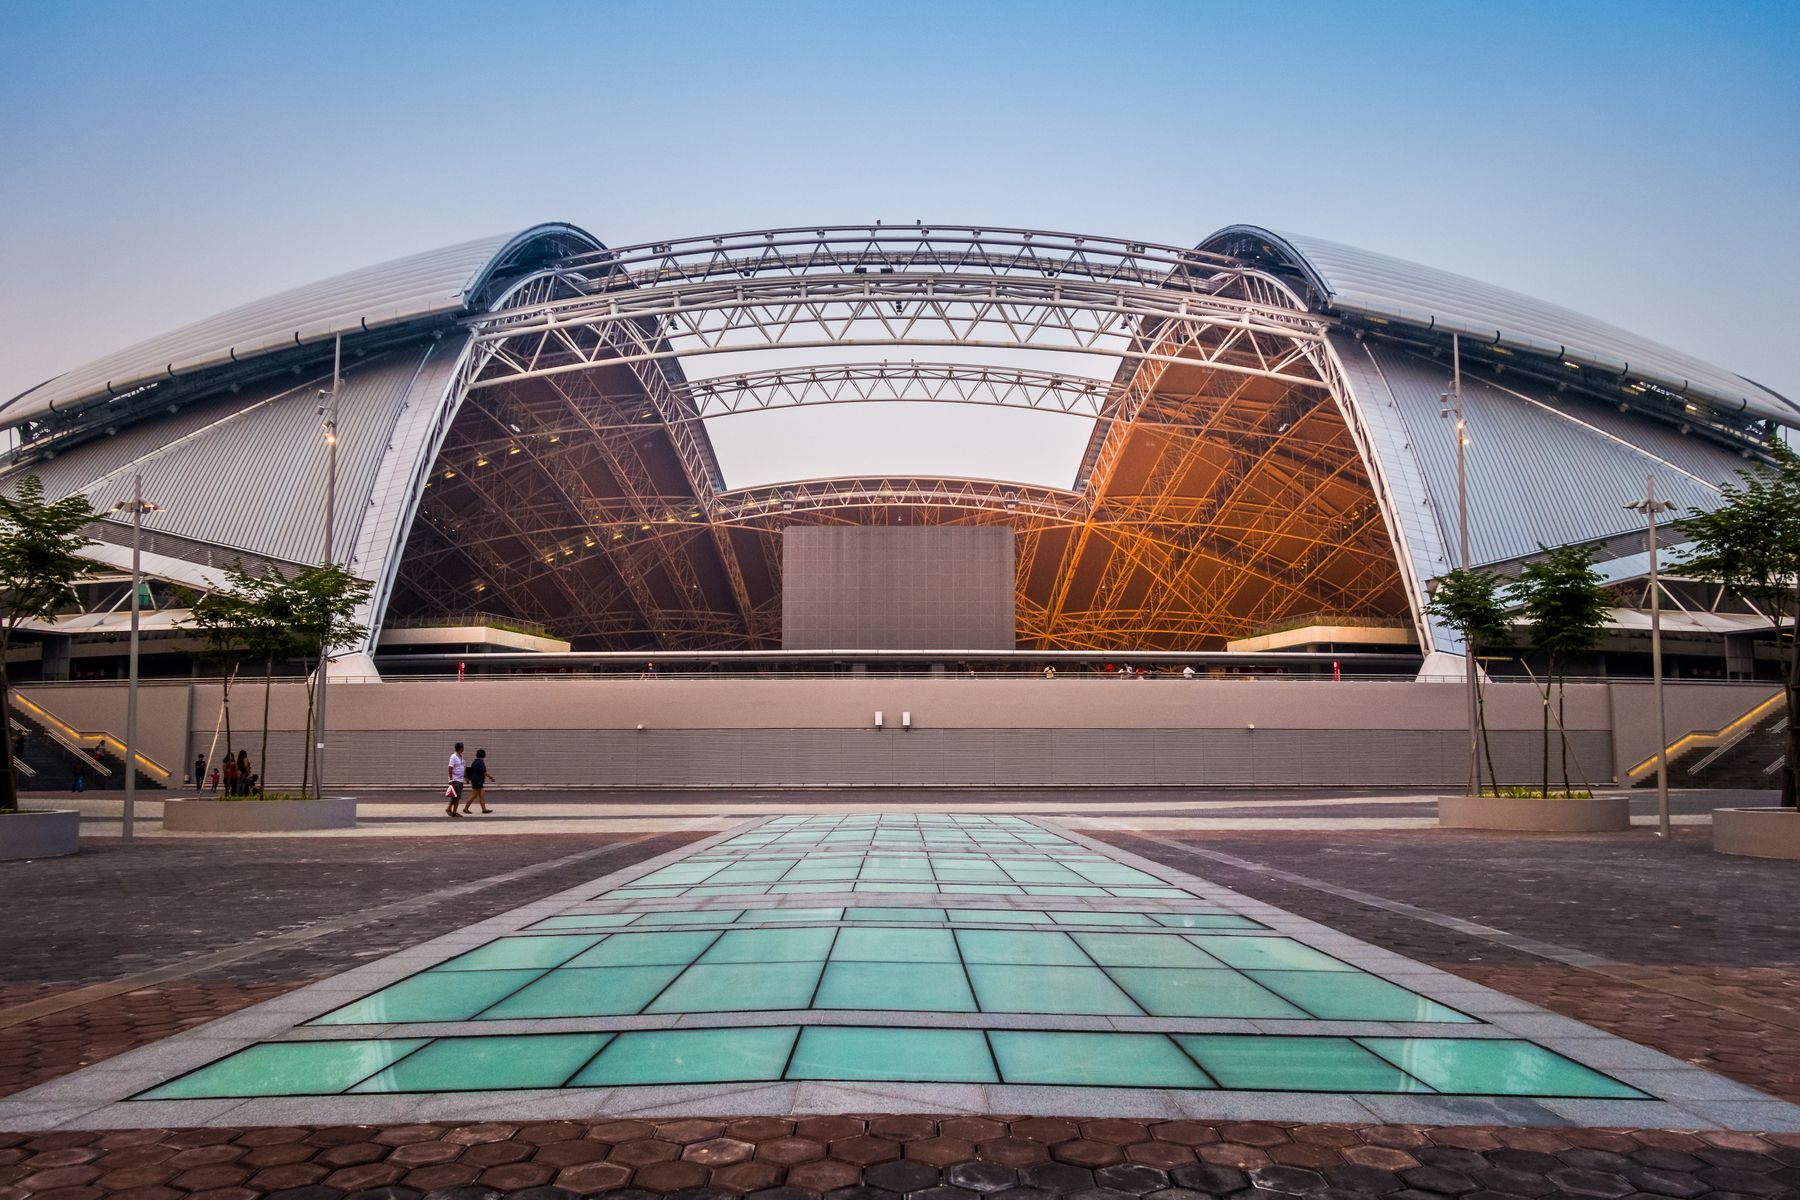 View of the Singapore National Stadium open retractable roof